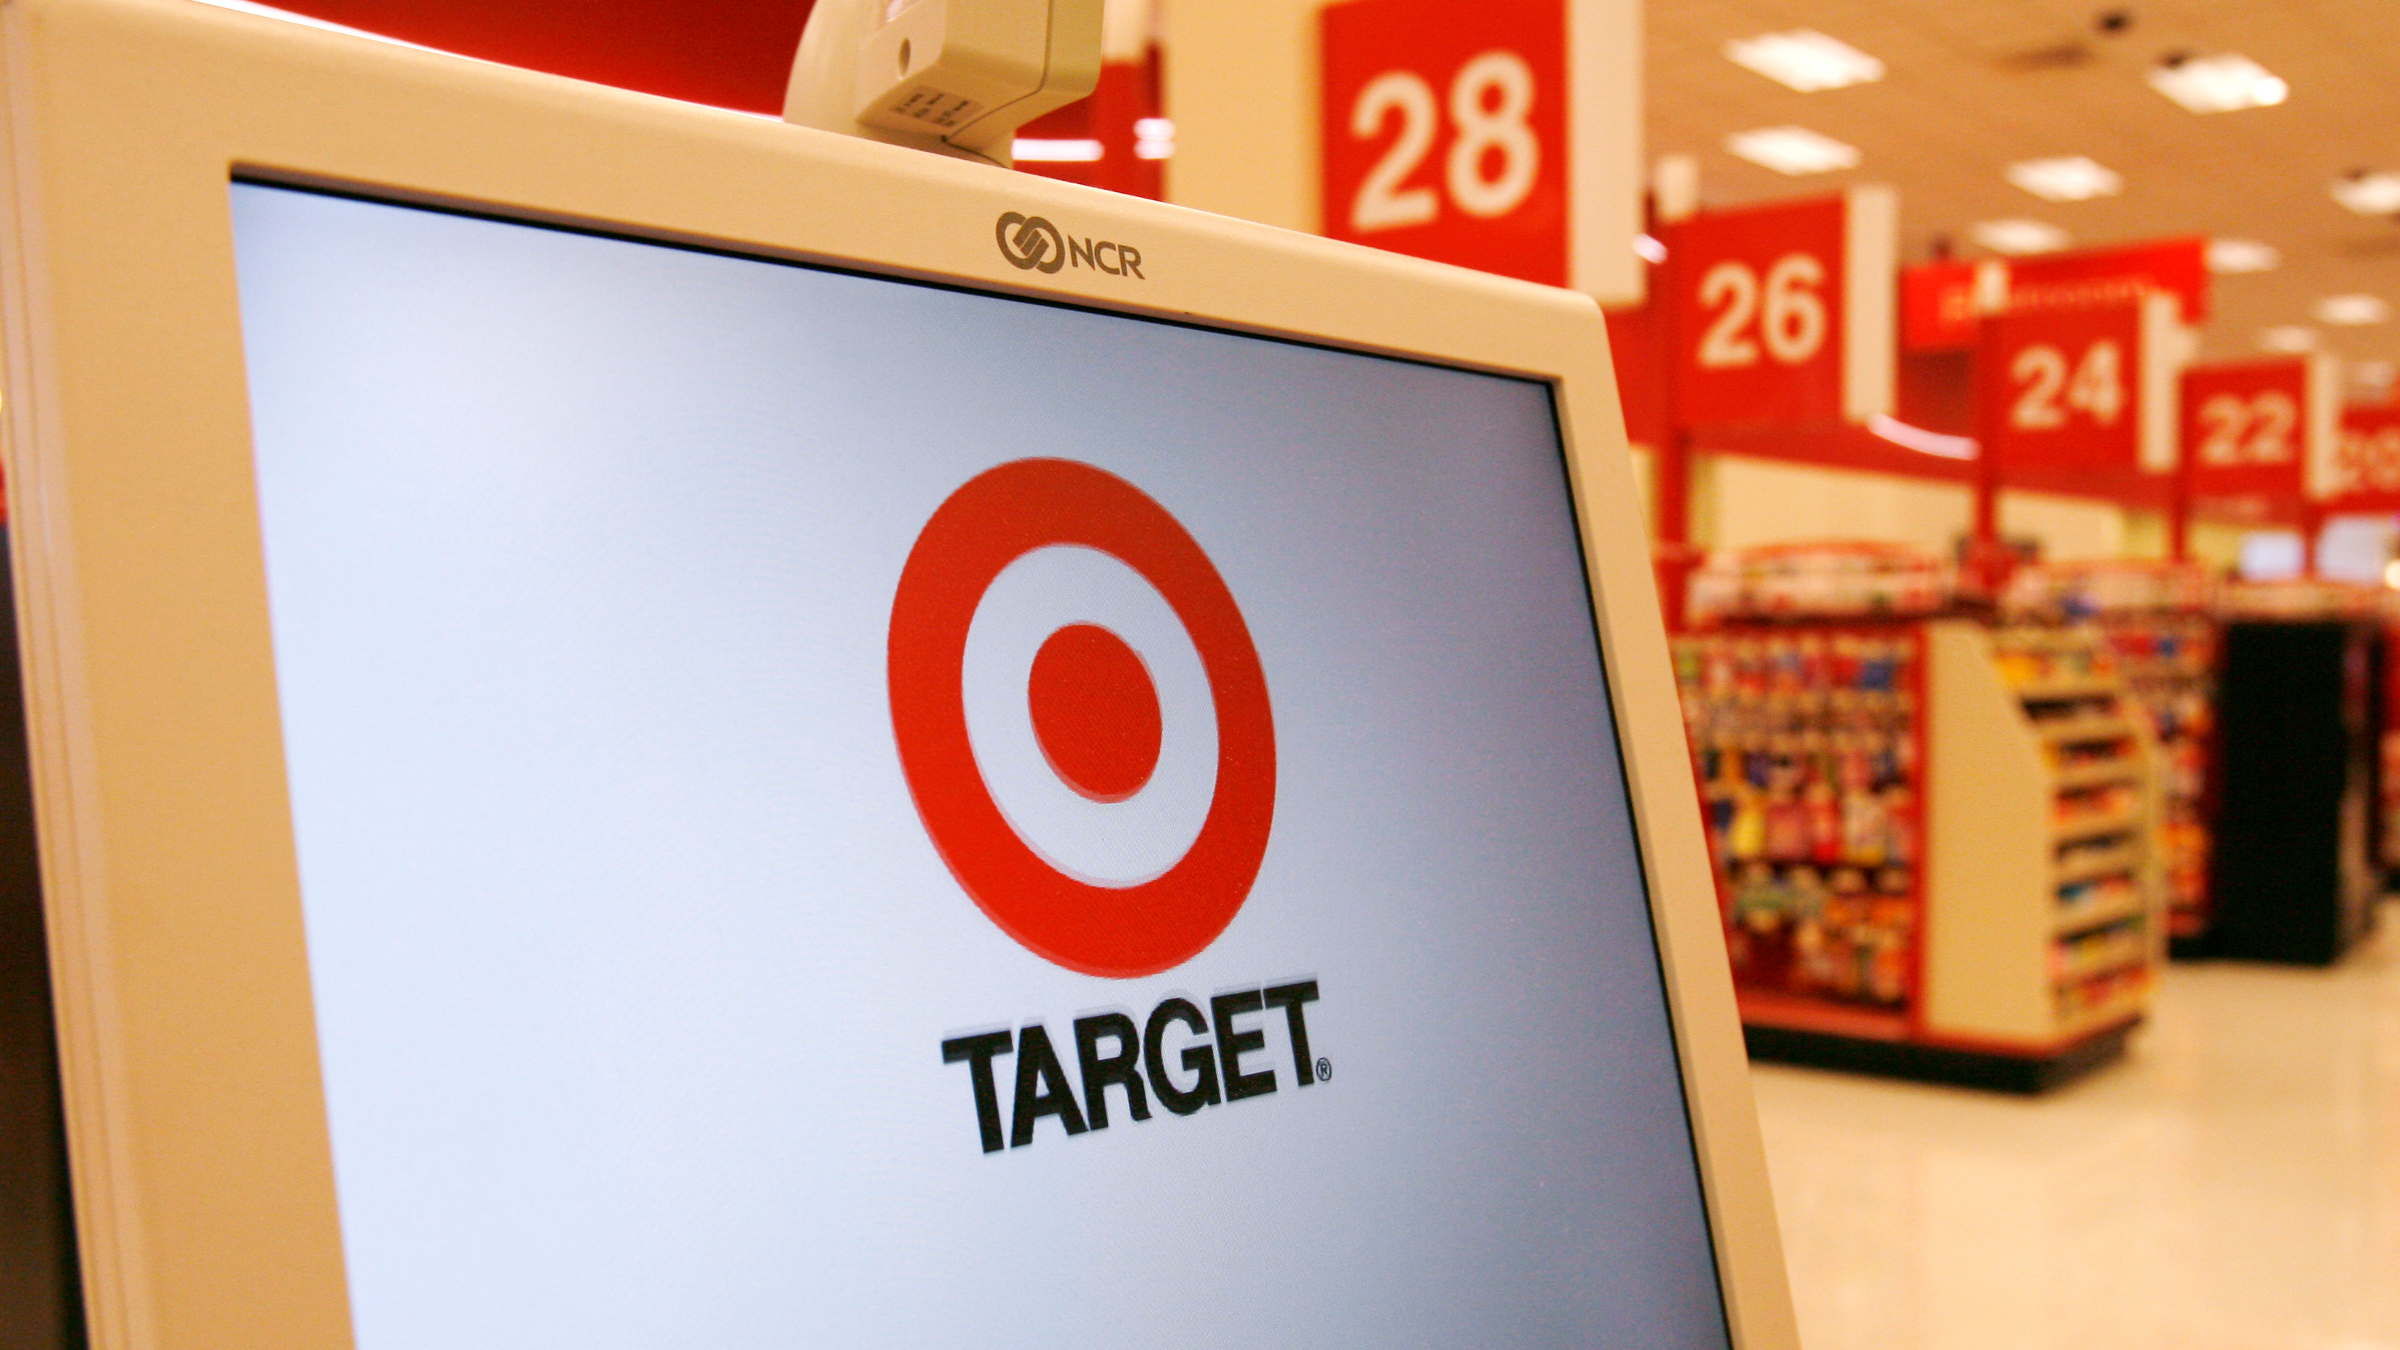 A Target company logo is displayed on a cash register in a Target store in Falls Church, Virginia August 19, 2008. Target Corp reported a nearly 8 percent drop in quarterly profit on Tuesday as shoppers passed over trendy clothes and home decor in favor of everyday necessities, hurting its margins. REUTERS/Kevin Lamarque (UNITED STATES)